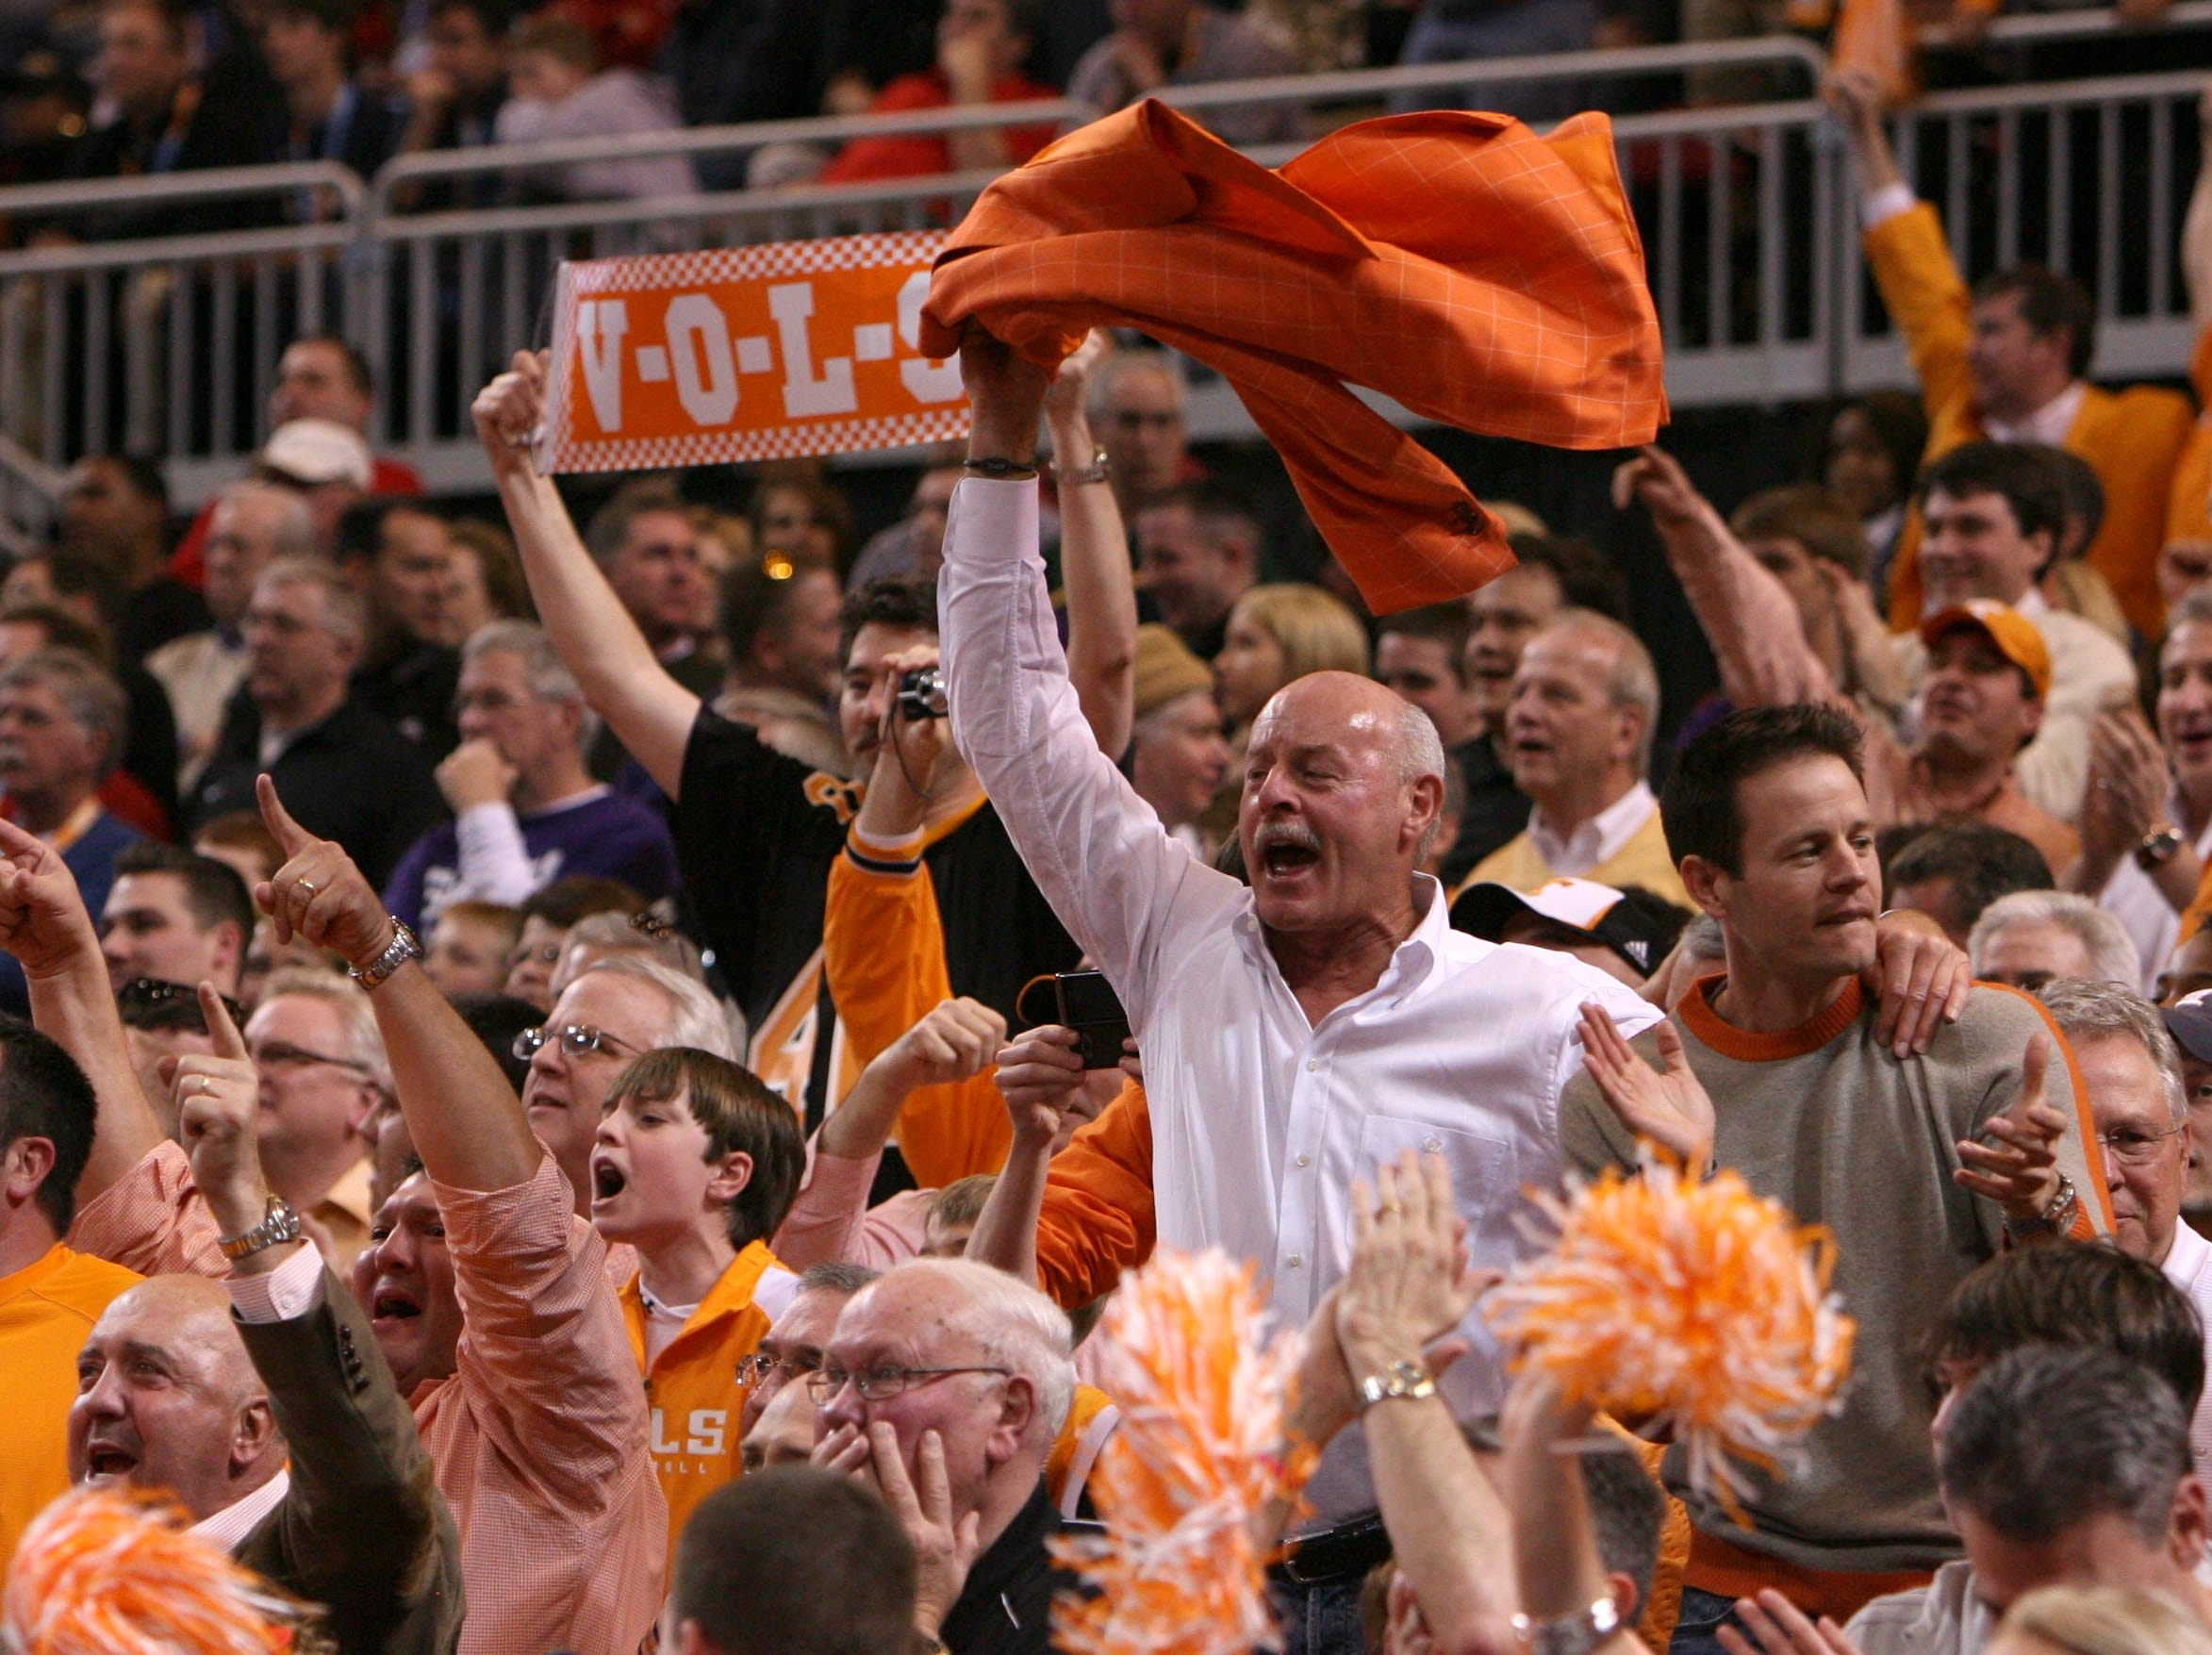 Tennessee fans cheer on the Vols after they defeated Ohio State during the NCAA tournament Sweet Sixteen at the Edward Jones Dome in St. Louis, Mo., Friday, Mar. 26, 2010.